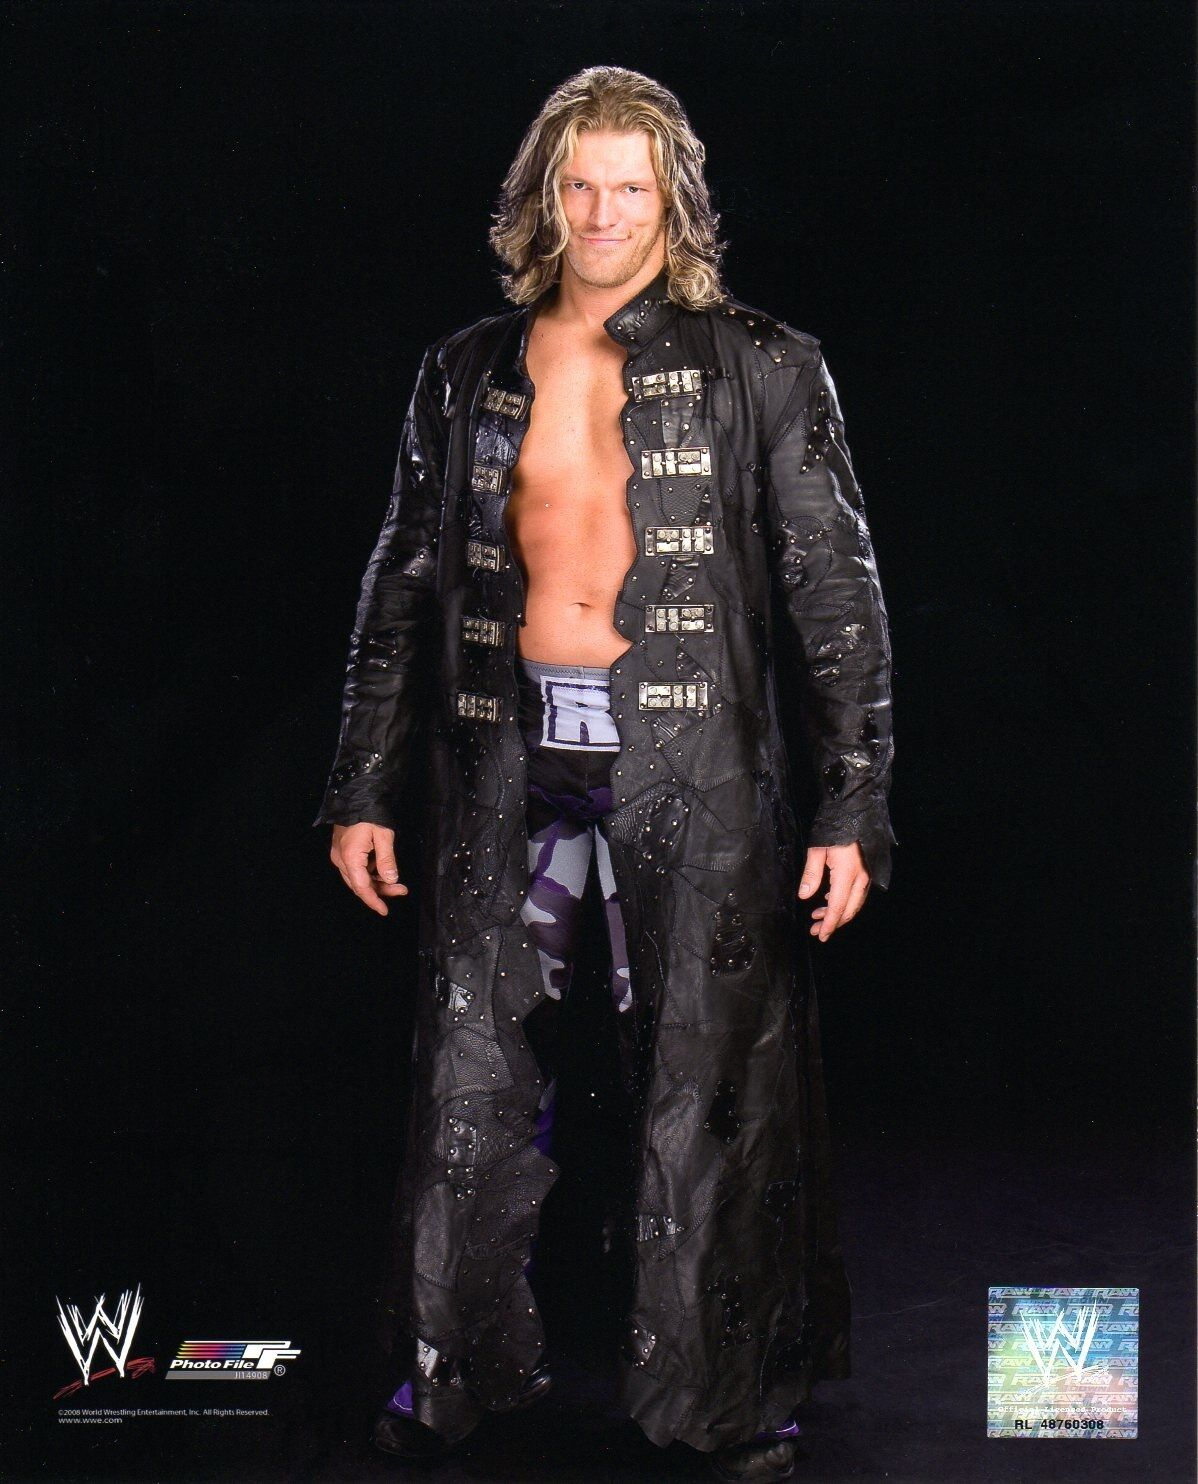 Wwe coupons free shipping